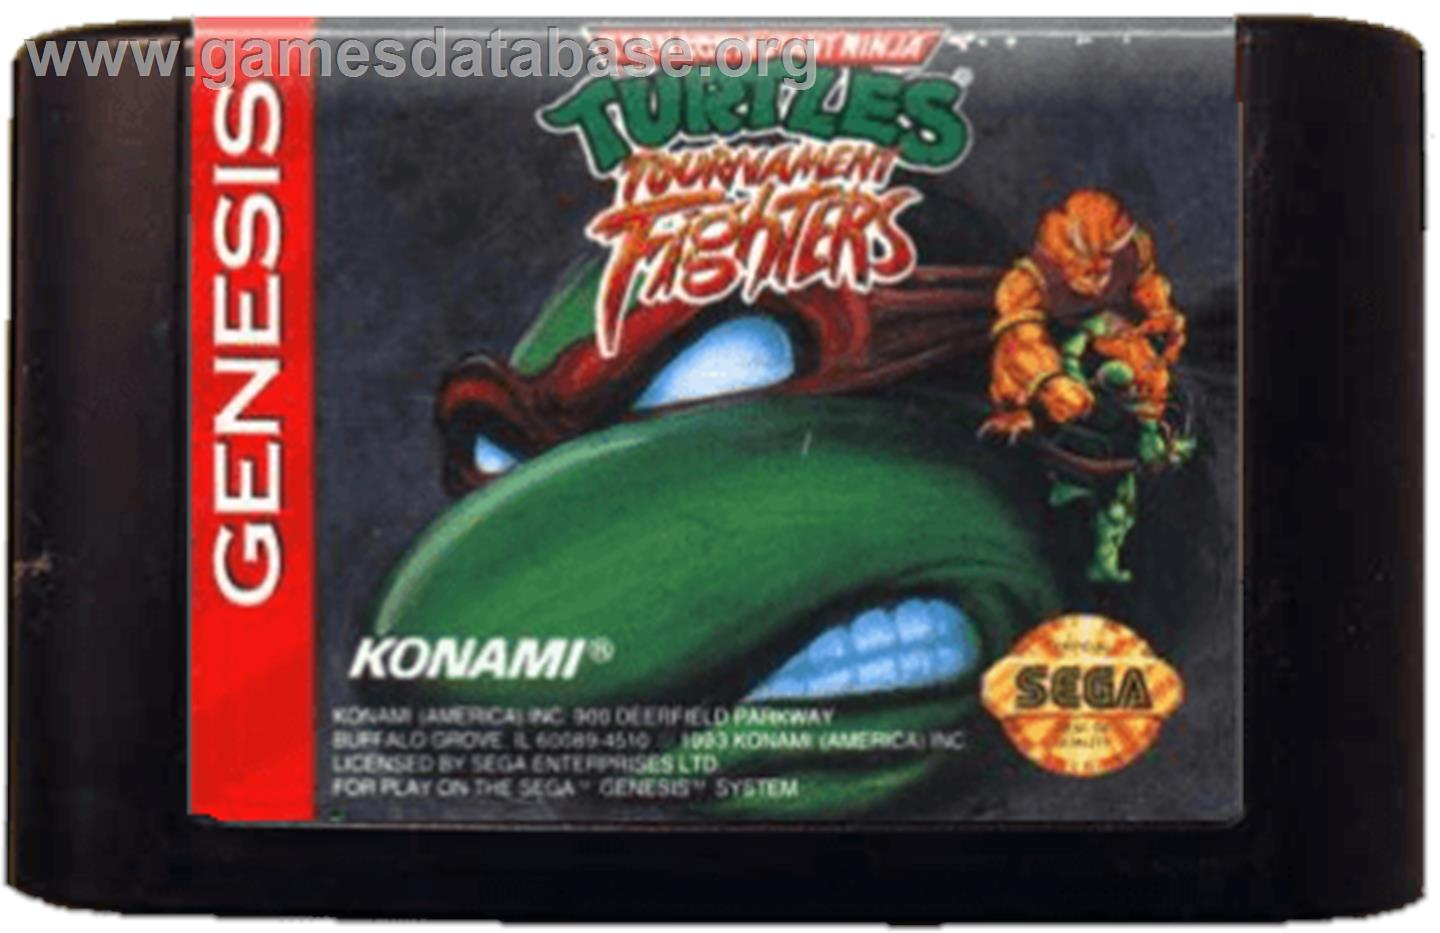 Teenage Mutant Ninja Turtles: Tournament Fighters - Sega Genesis - Artwork - Cartridge